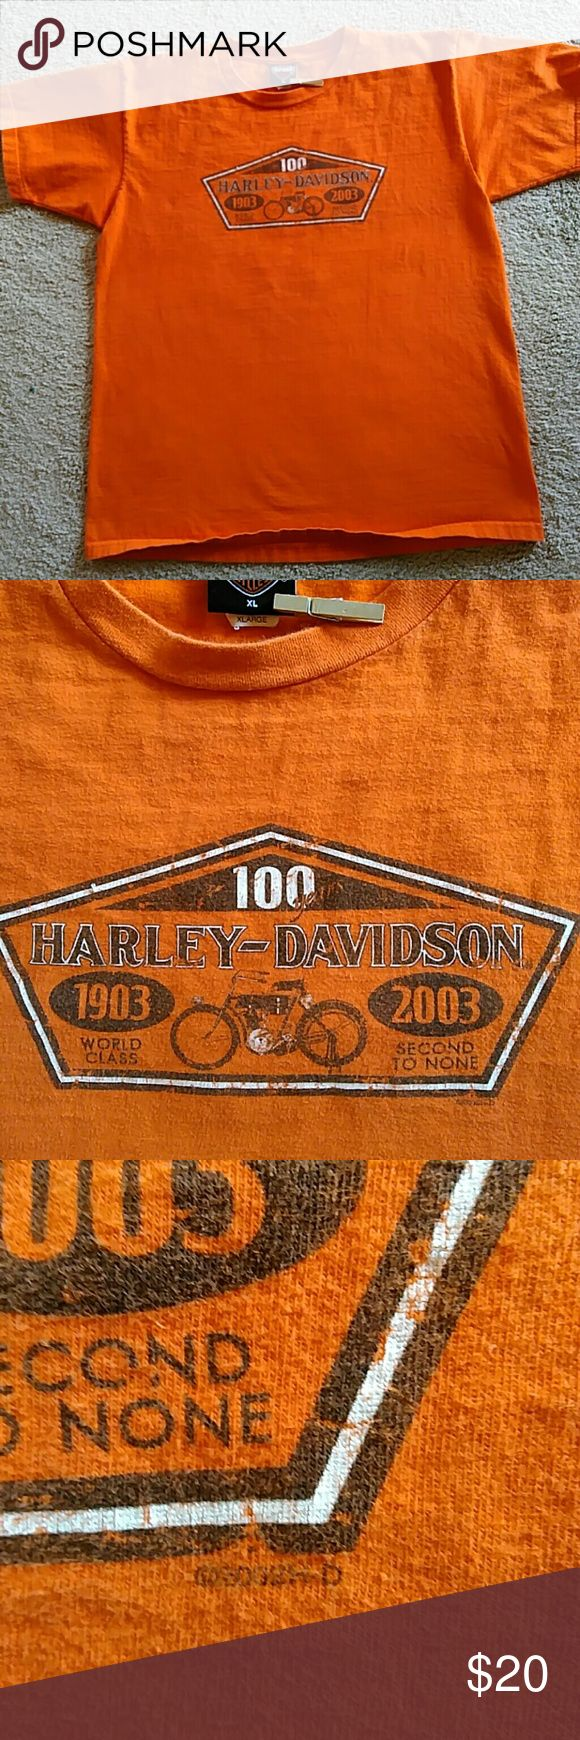 XL Harley Davidson T-Shirt 100 year anniversary Harley shirt XL from Part, TX.  Nice condition used shirt. Harley-Davidson Shirts Tees - Short Sleeve